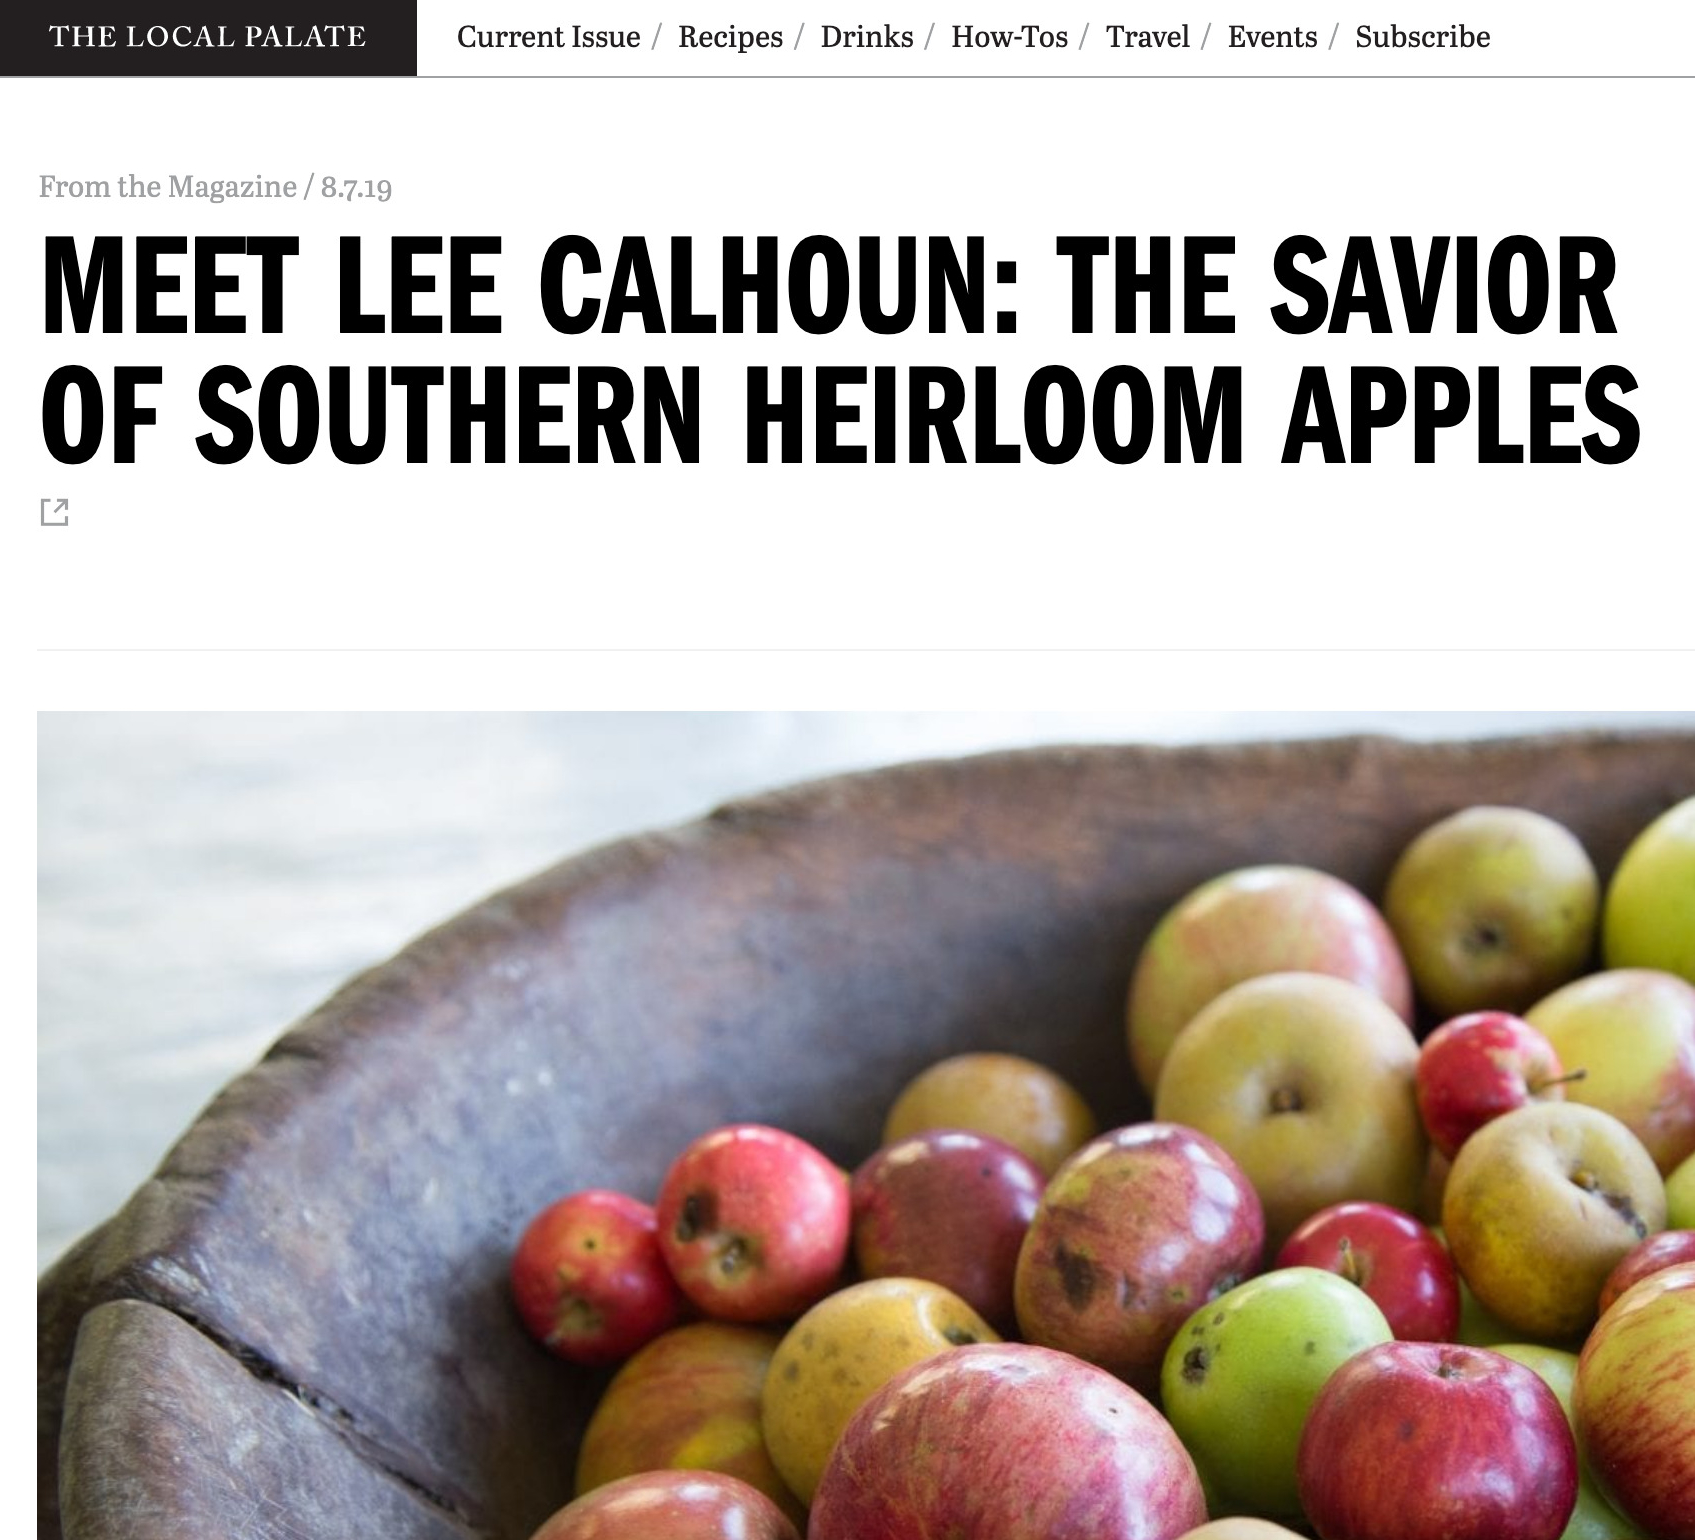 screen shot of the article on The Local Palate webpage